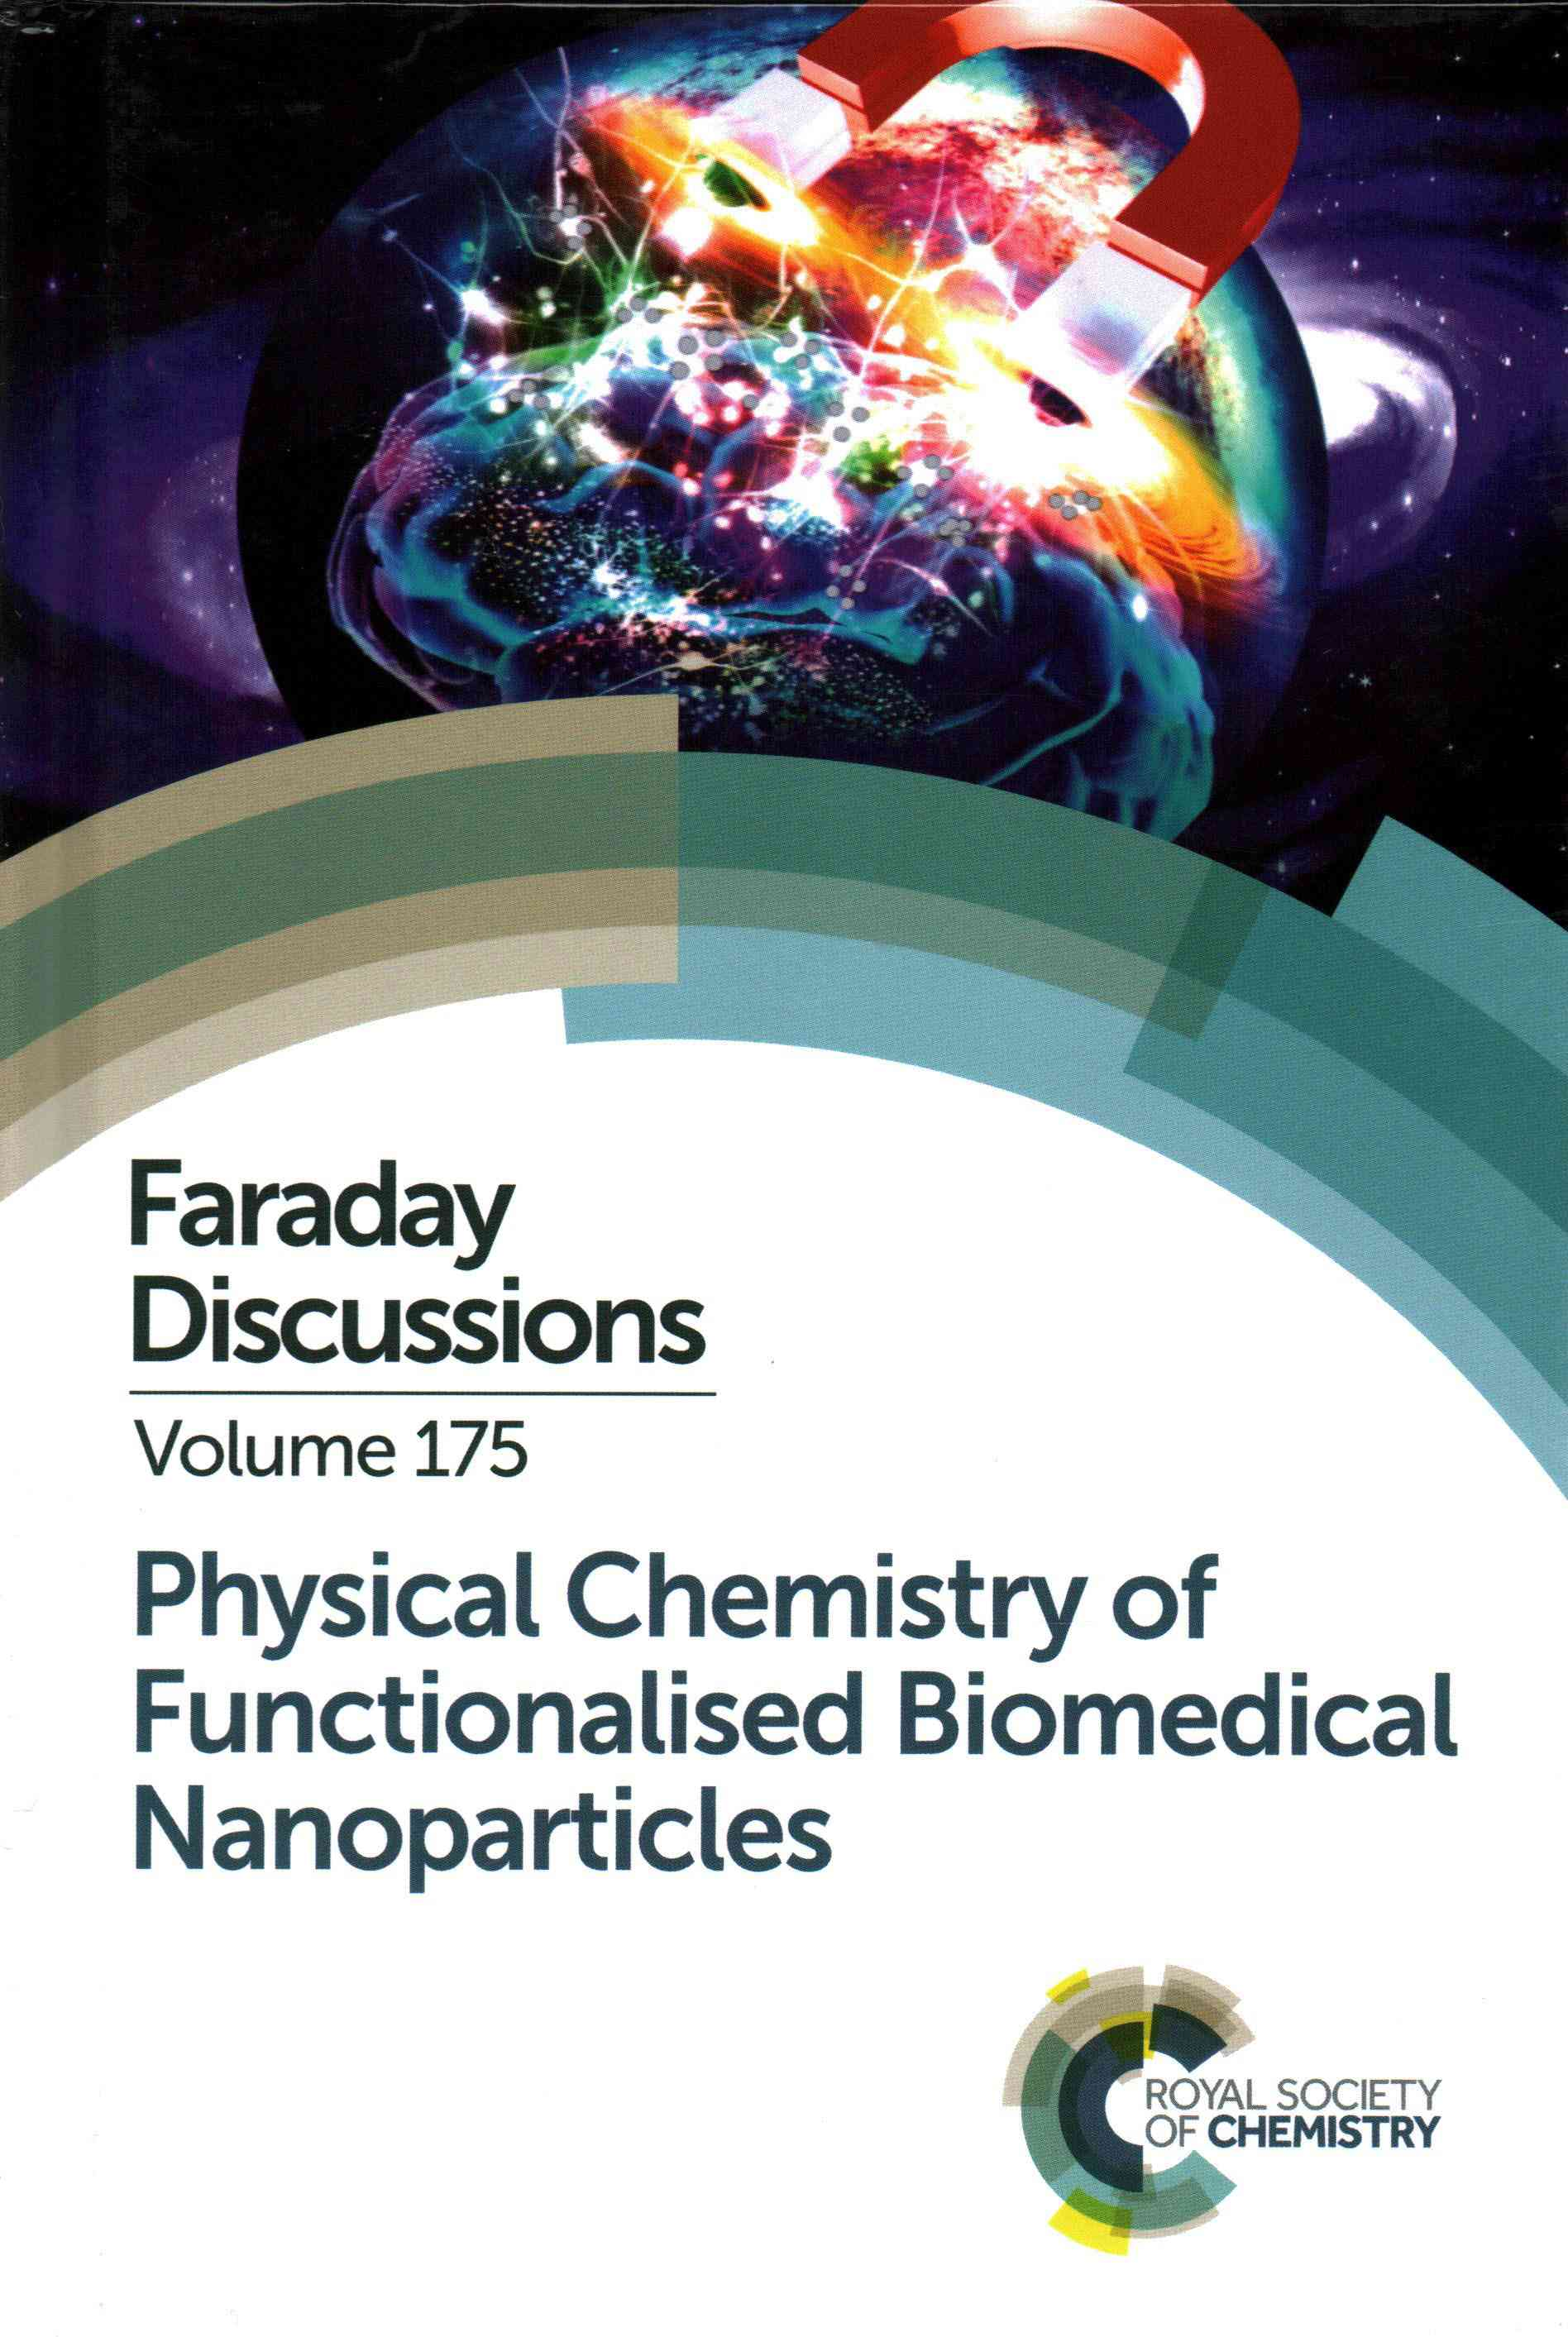 Physical Chemistry of Functionalised Biomedical Nanoparticles: University of Bristol, UK 17-19 September 2014 (Hardcover)